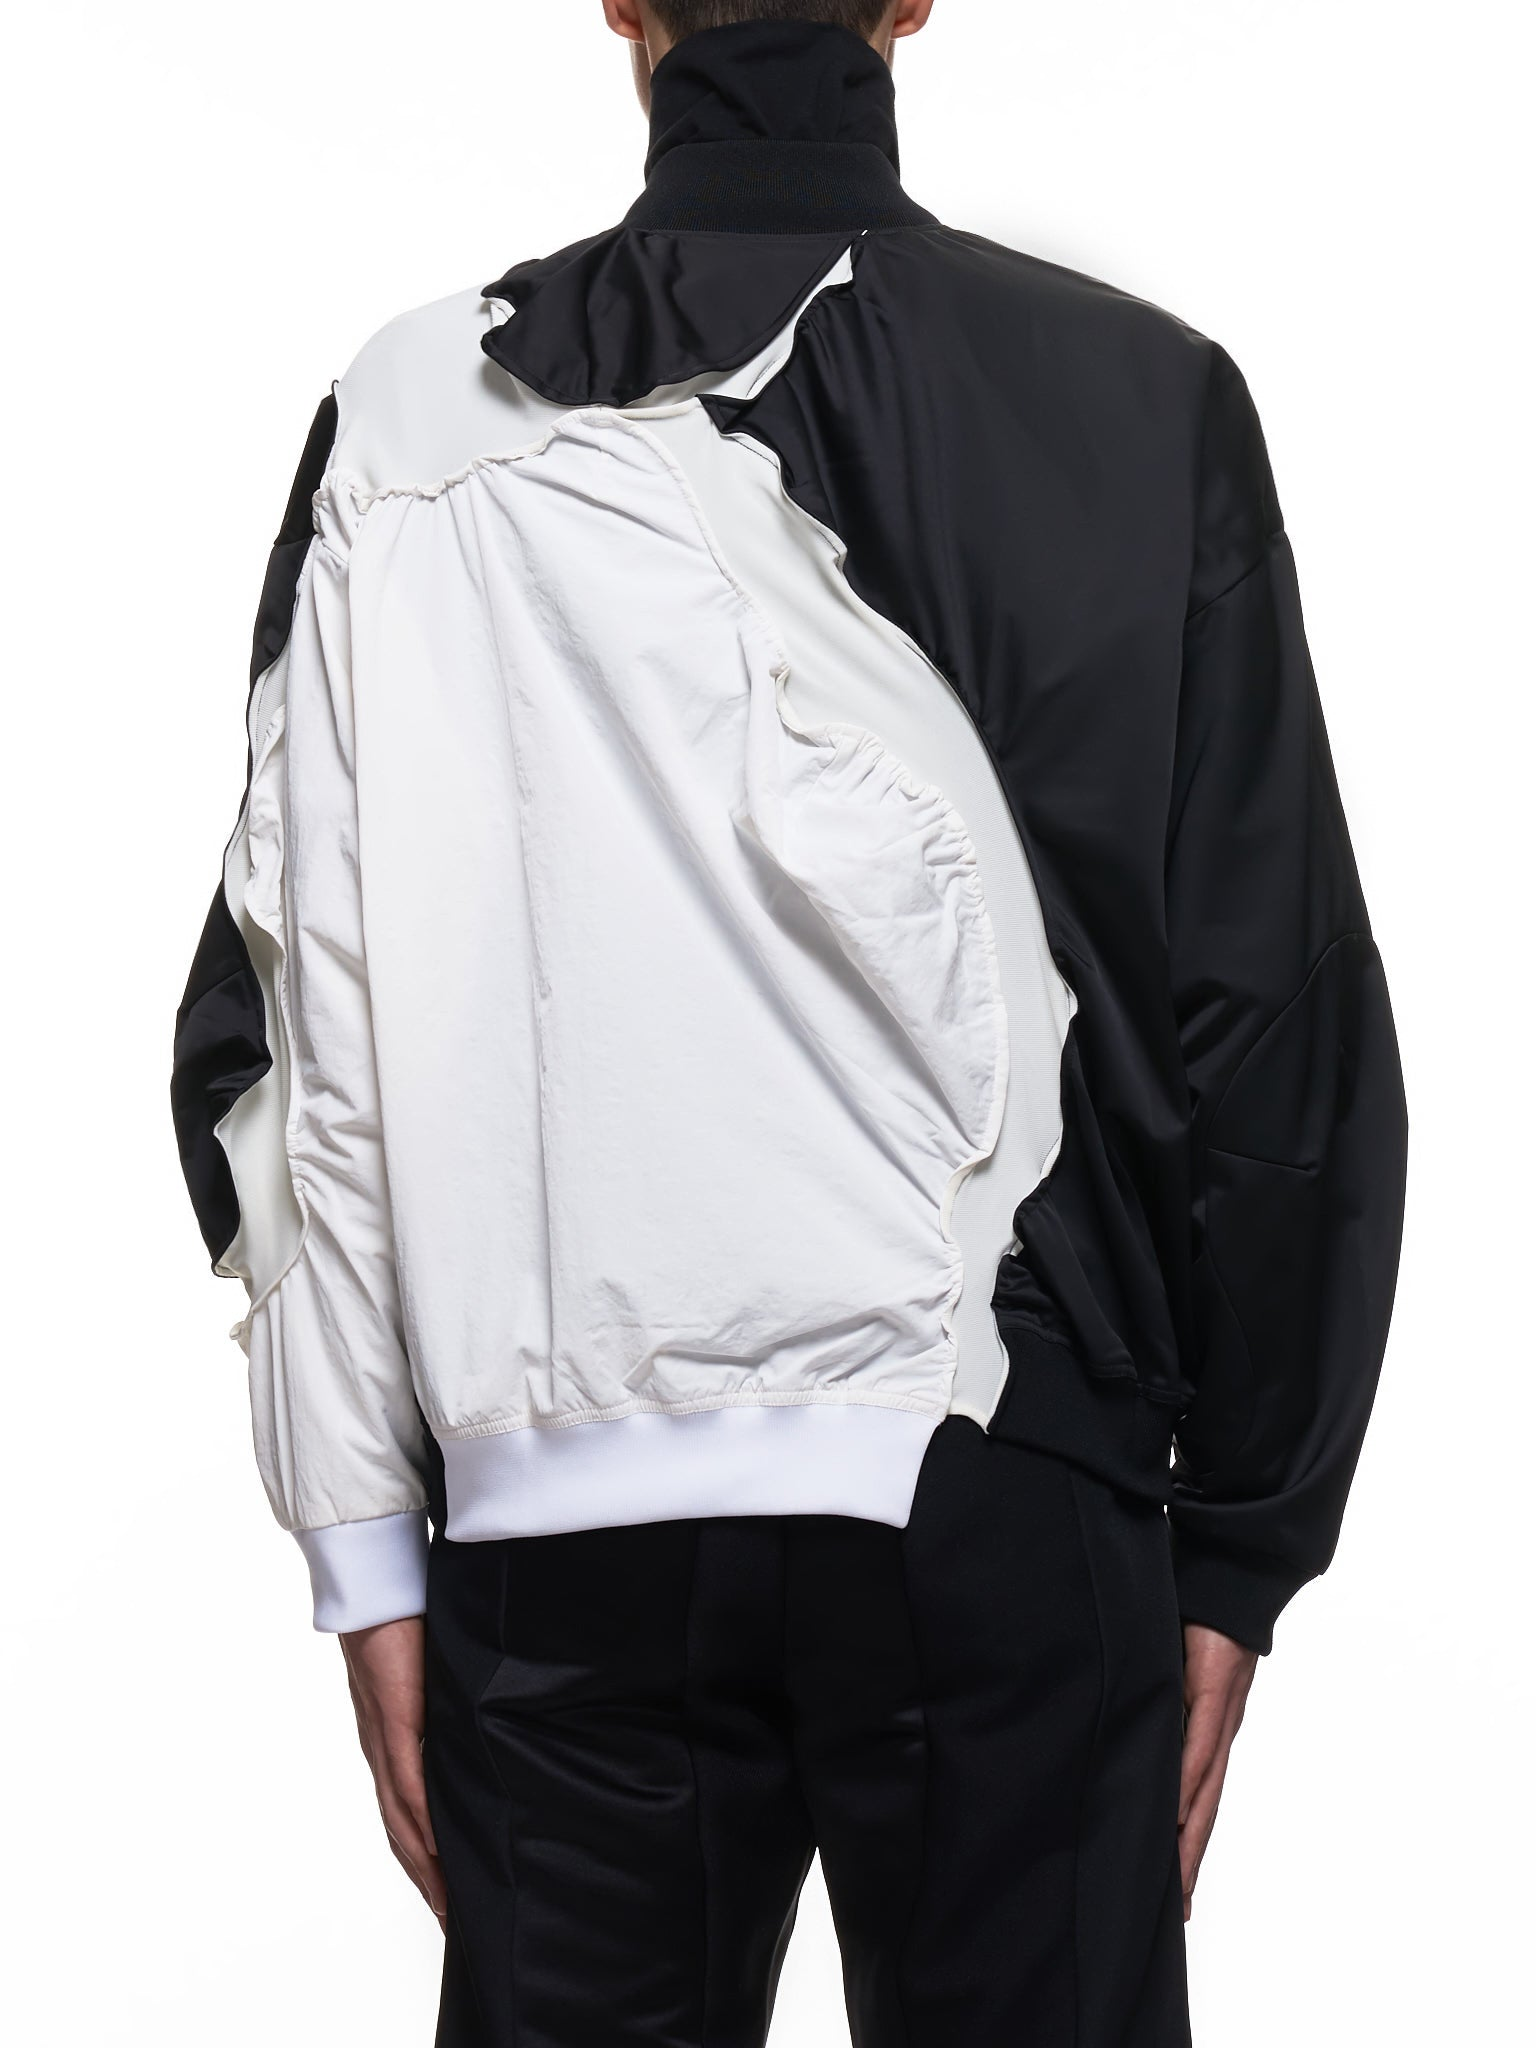 Post Archives Faction (PAF) Jacket | H.Lorenzo Back